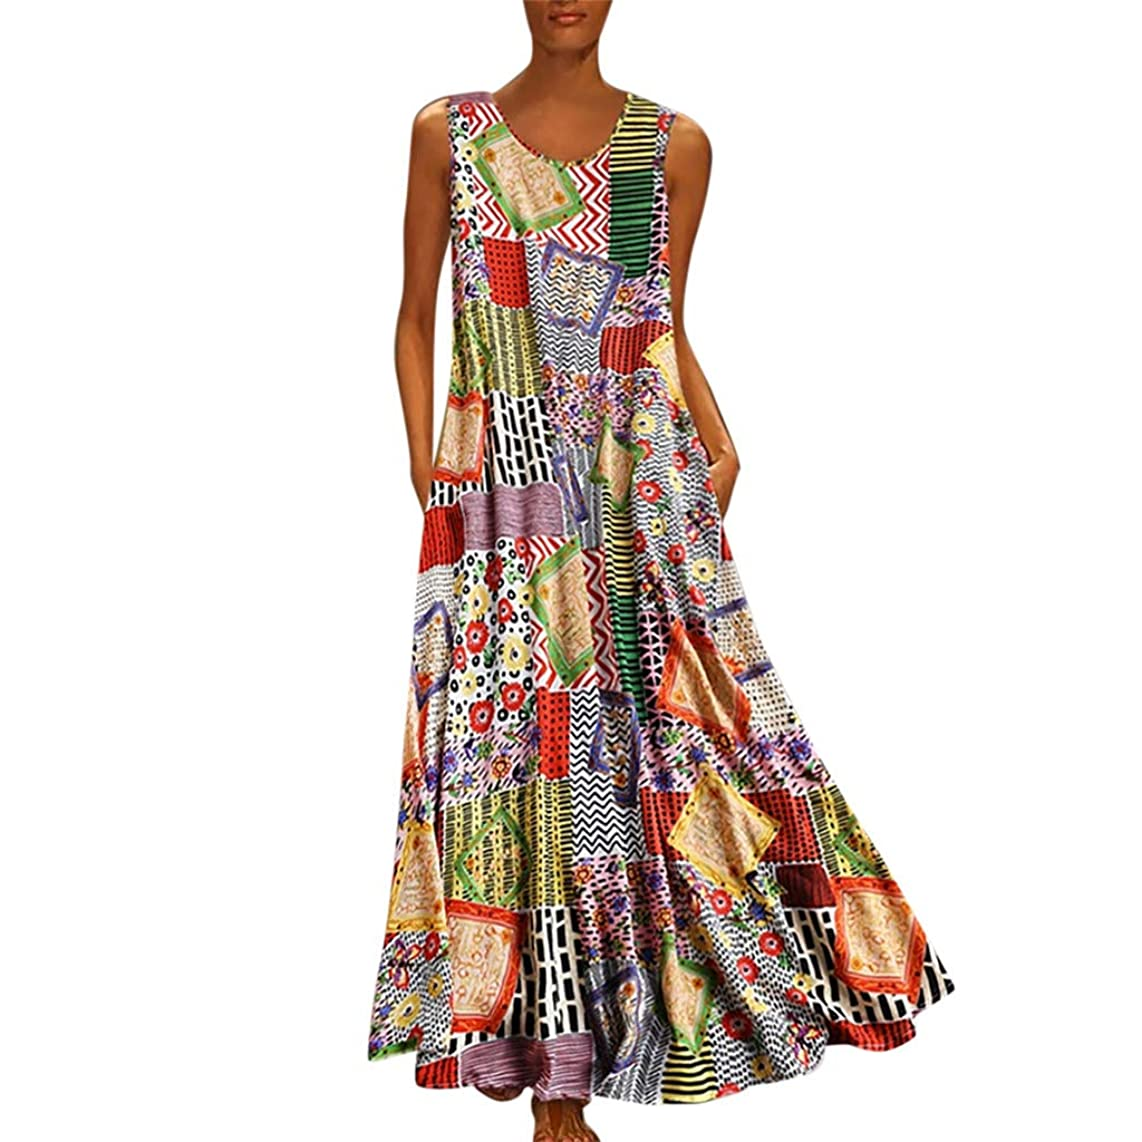 TIANMI Women Vintage Print Floral Patch Dress Sleeveless O-Neck Loose Maxi Dress